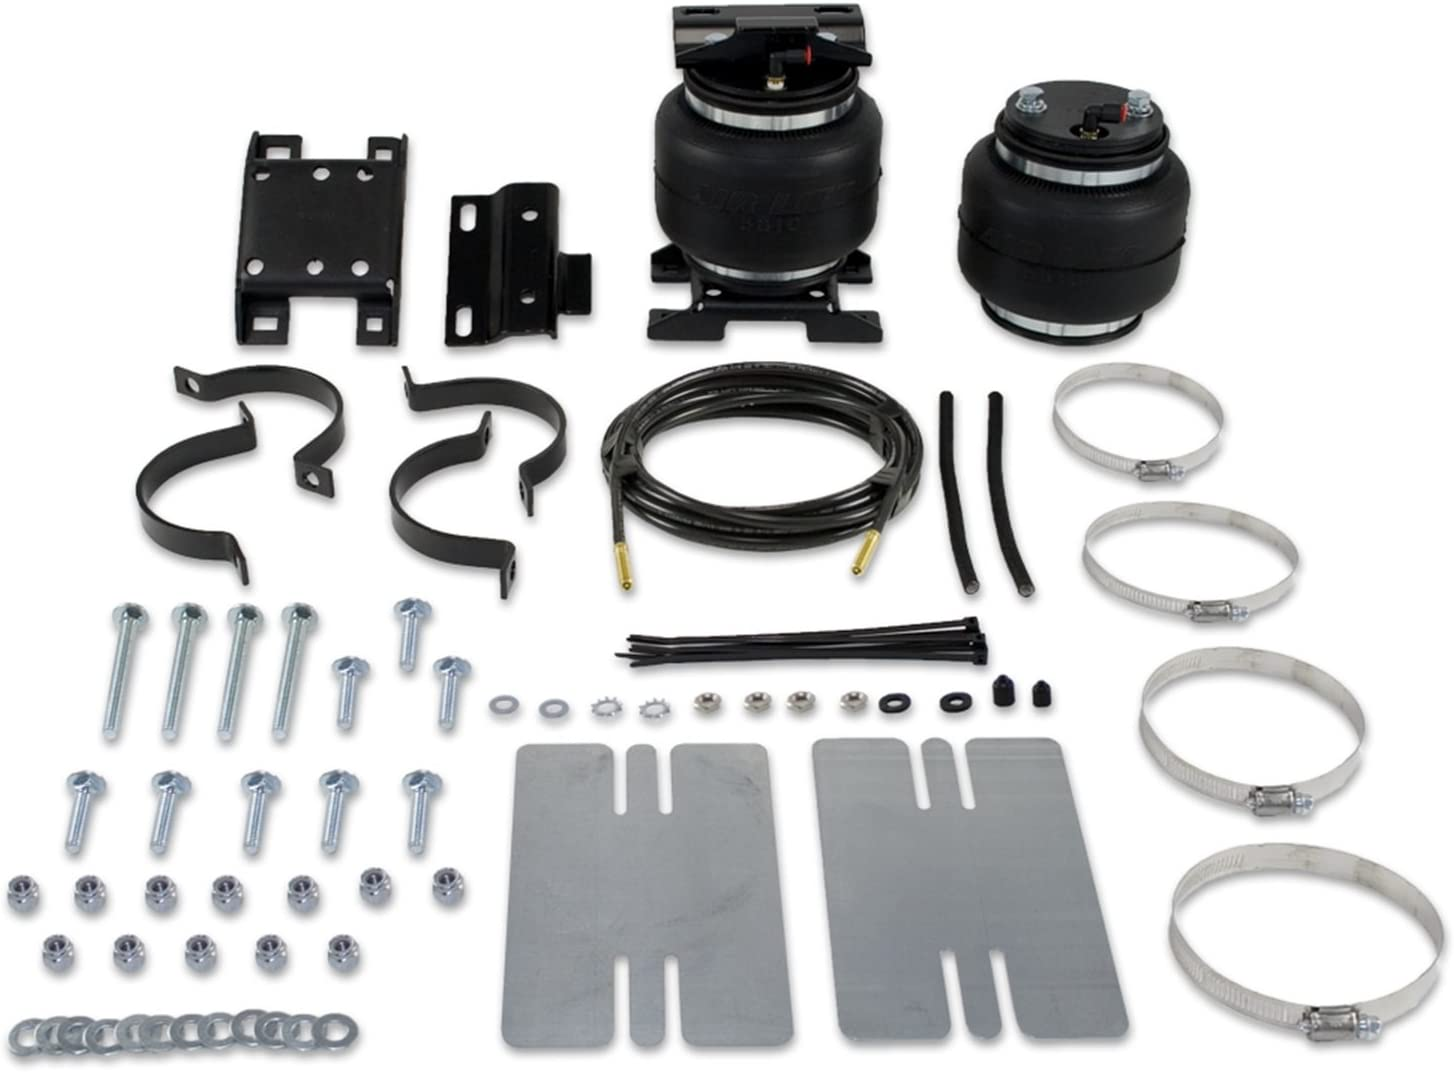 AIR LIFT 57221 LoadLifter 5000 Series Rear Air Spring Kit